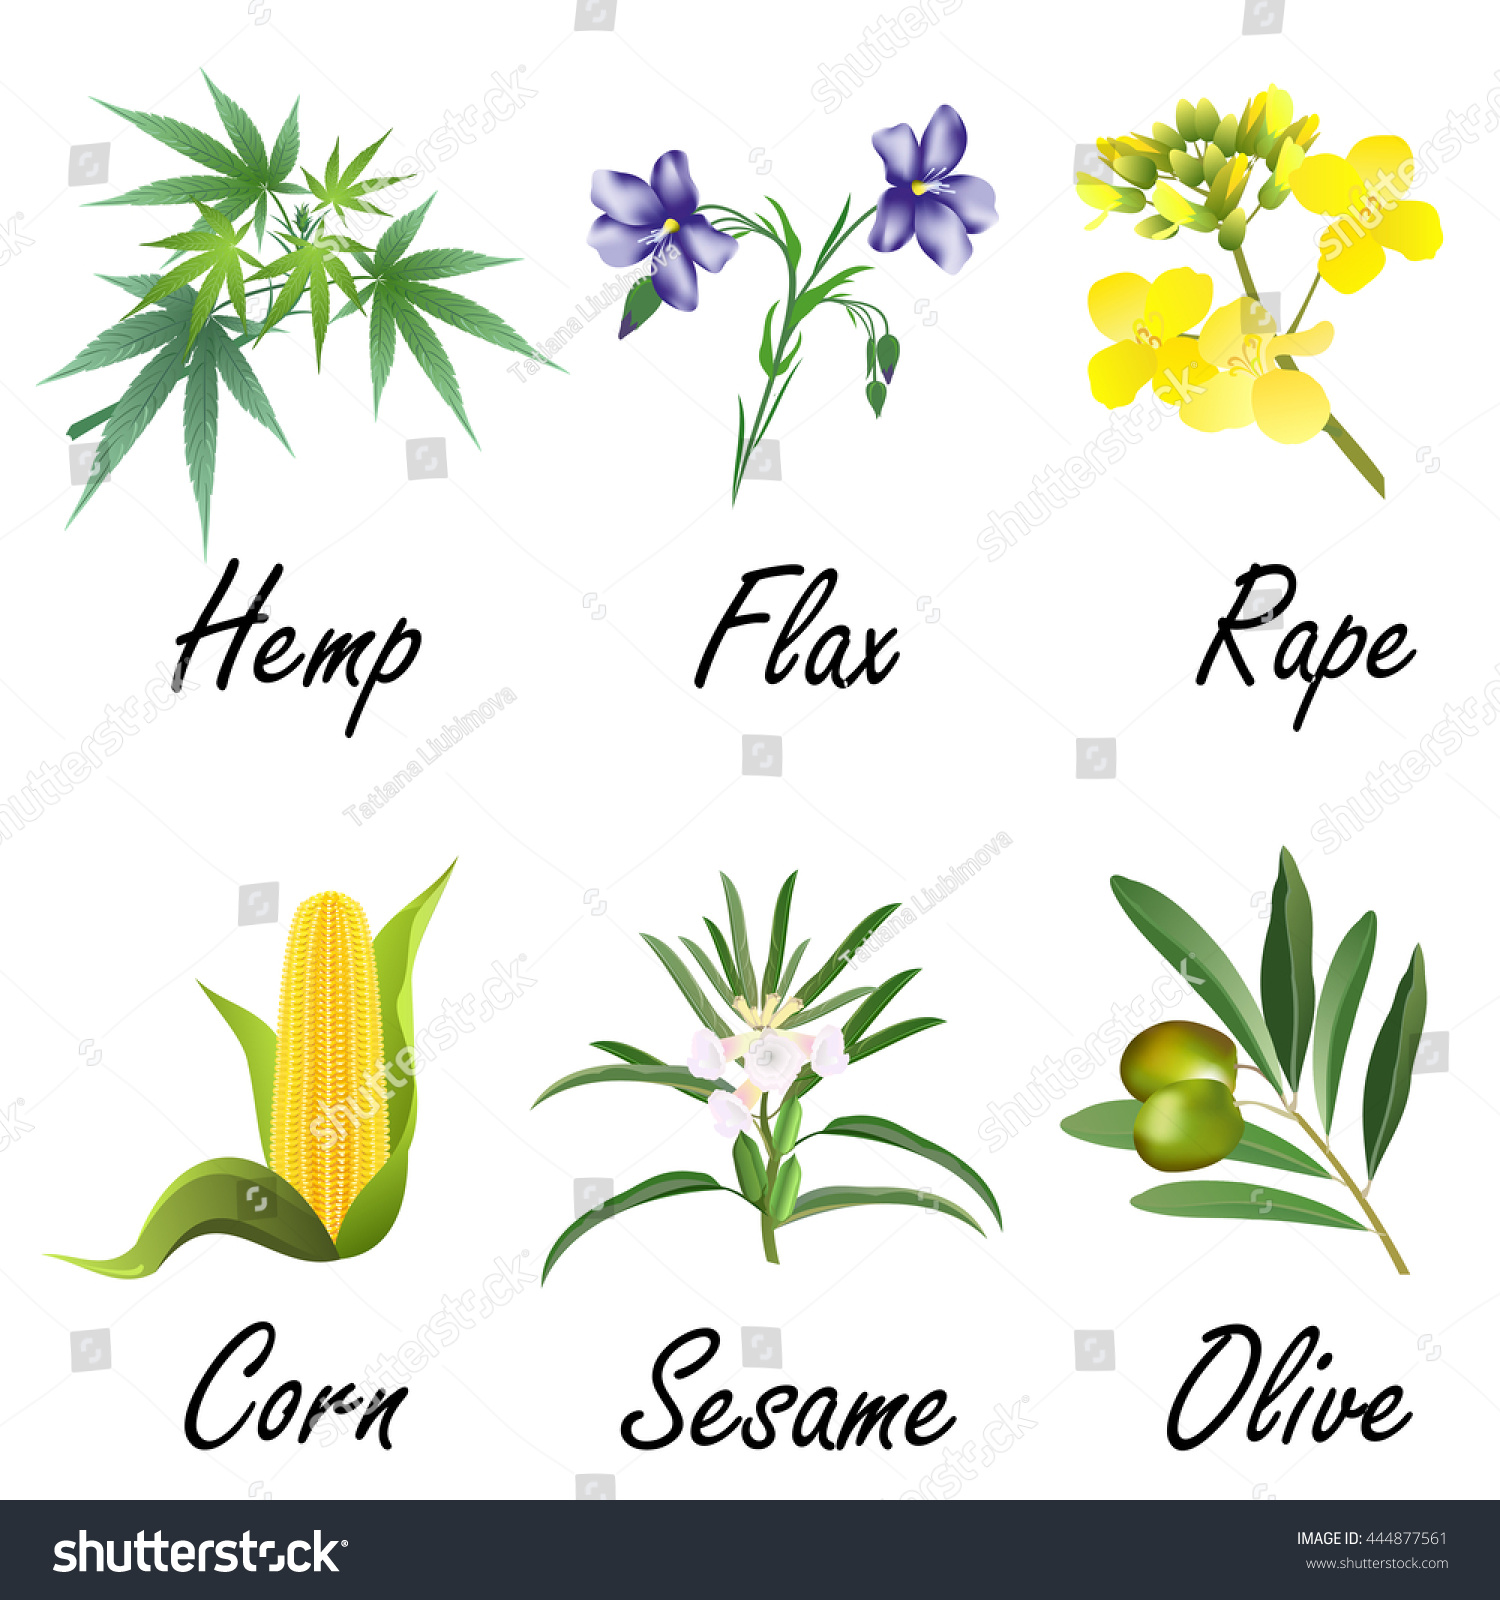 Edible Oil Plants : Set plants used vegetable oil production stock vector